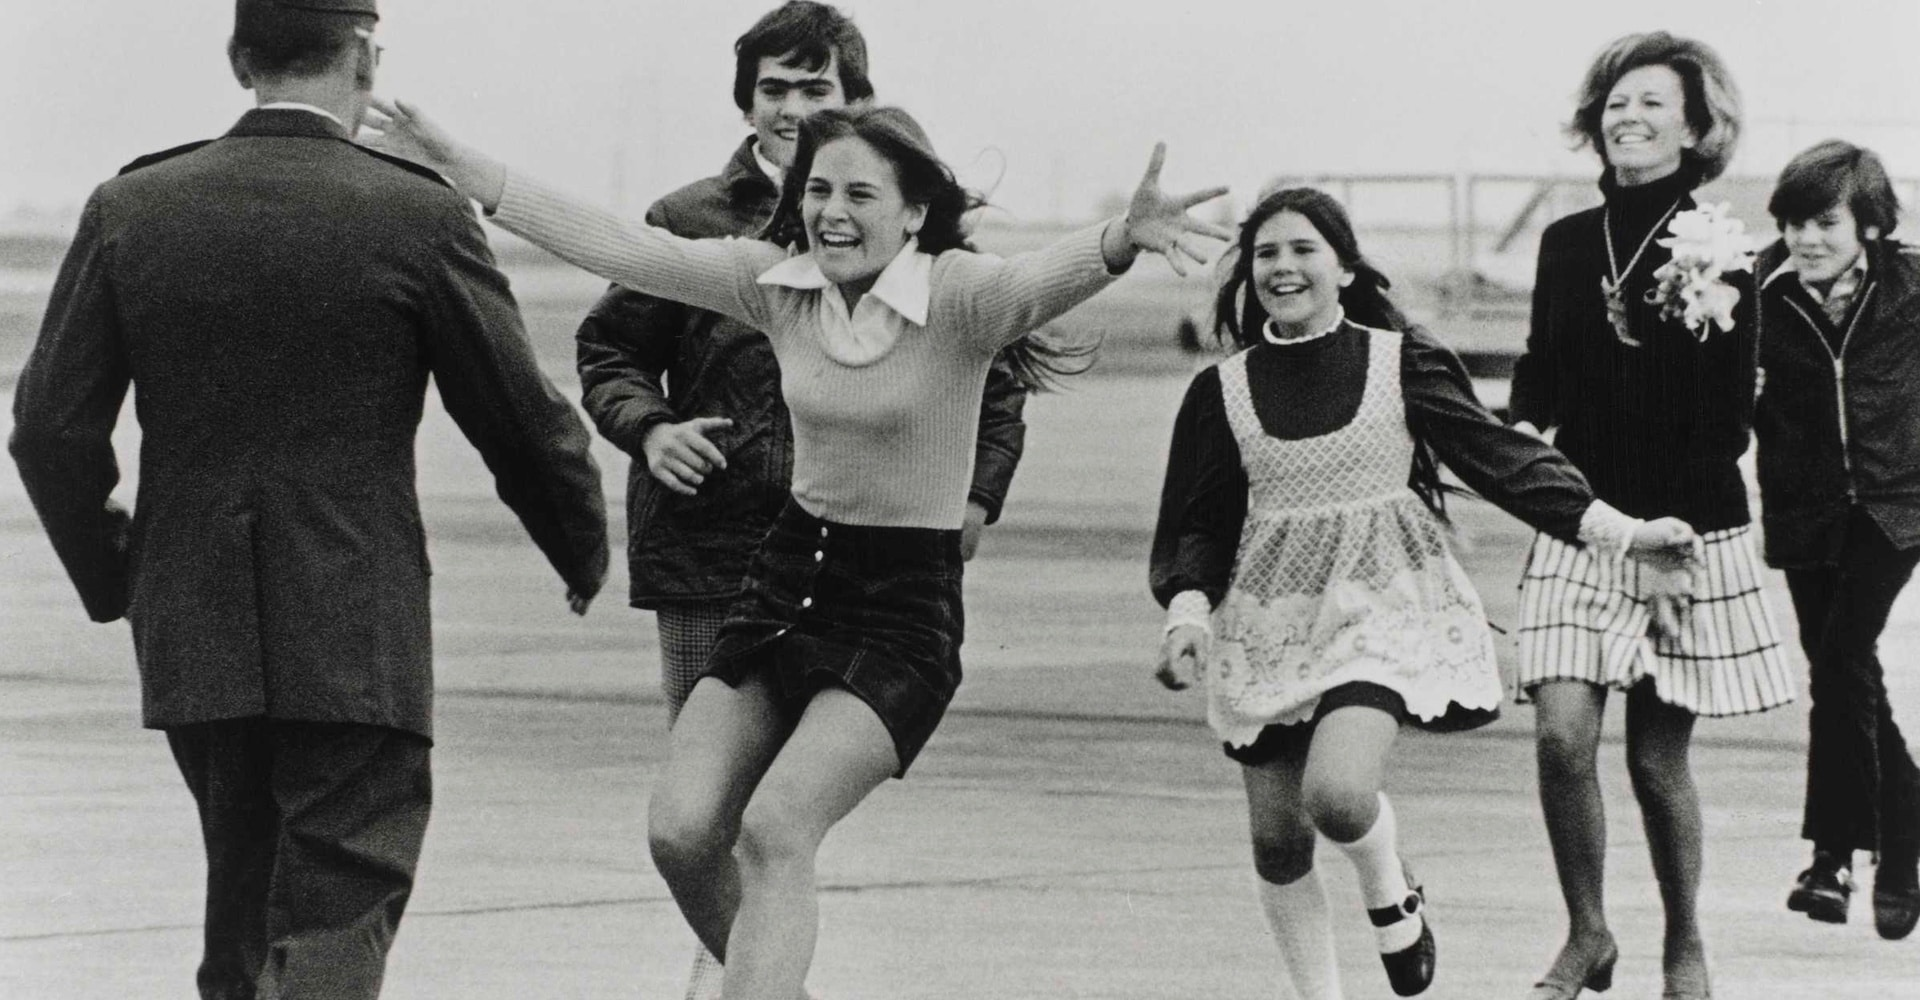 Burst of Joy, Travis Air Force Base - California, March 1973